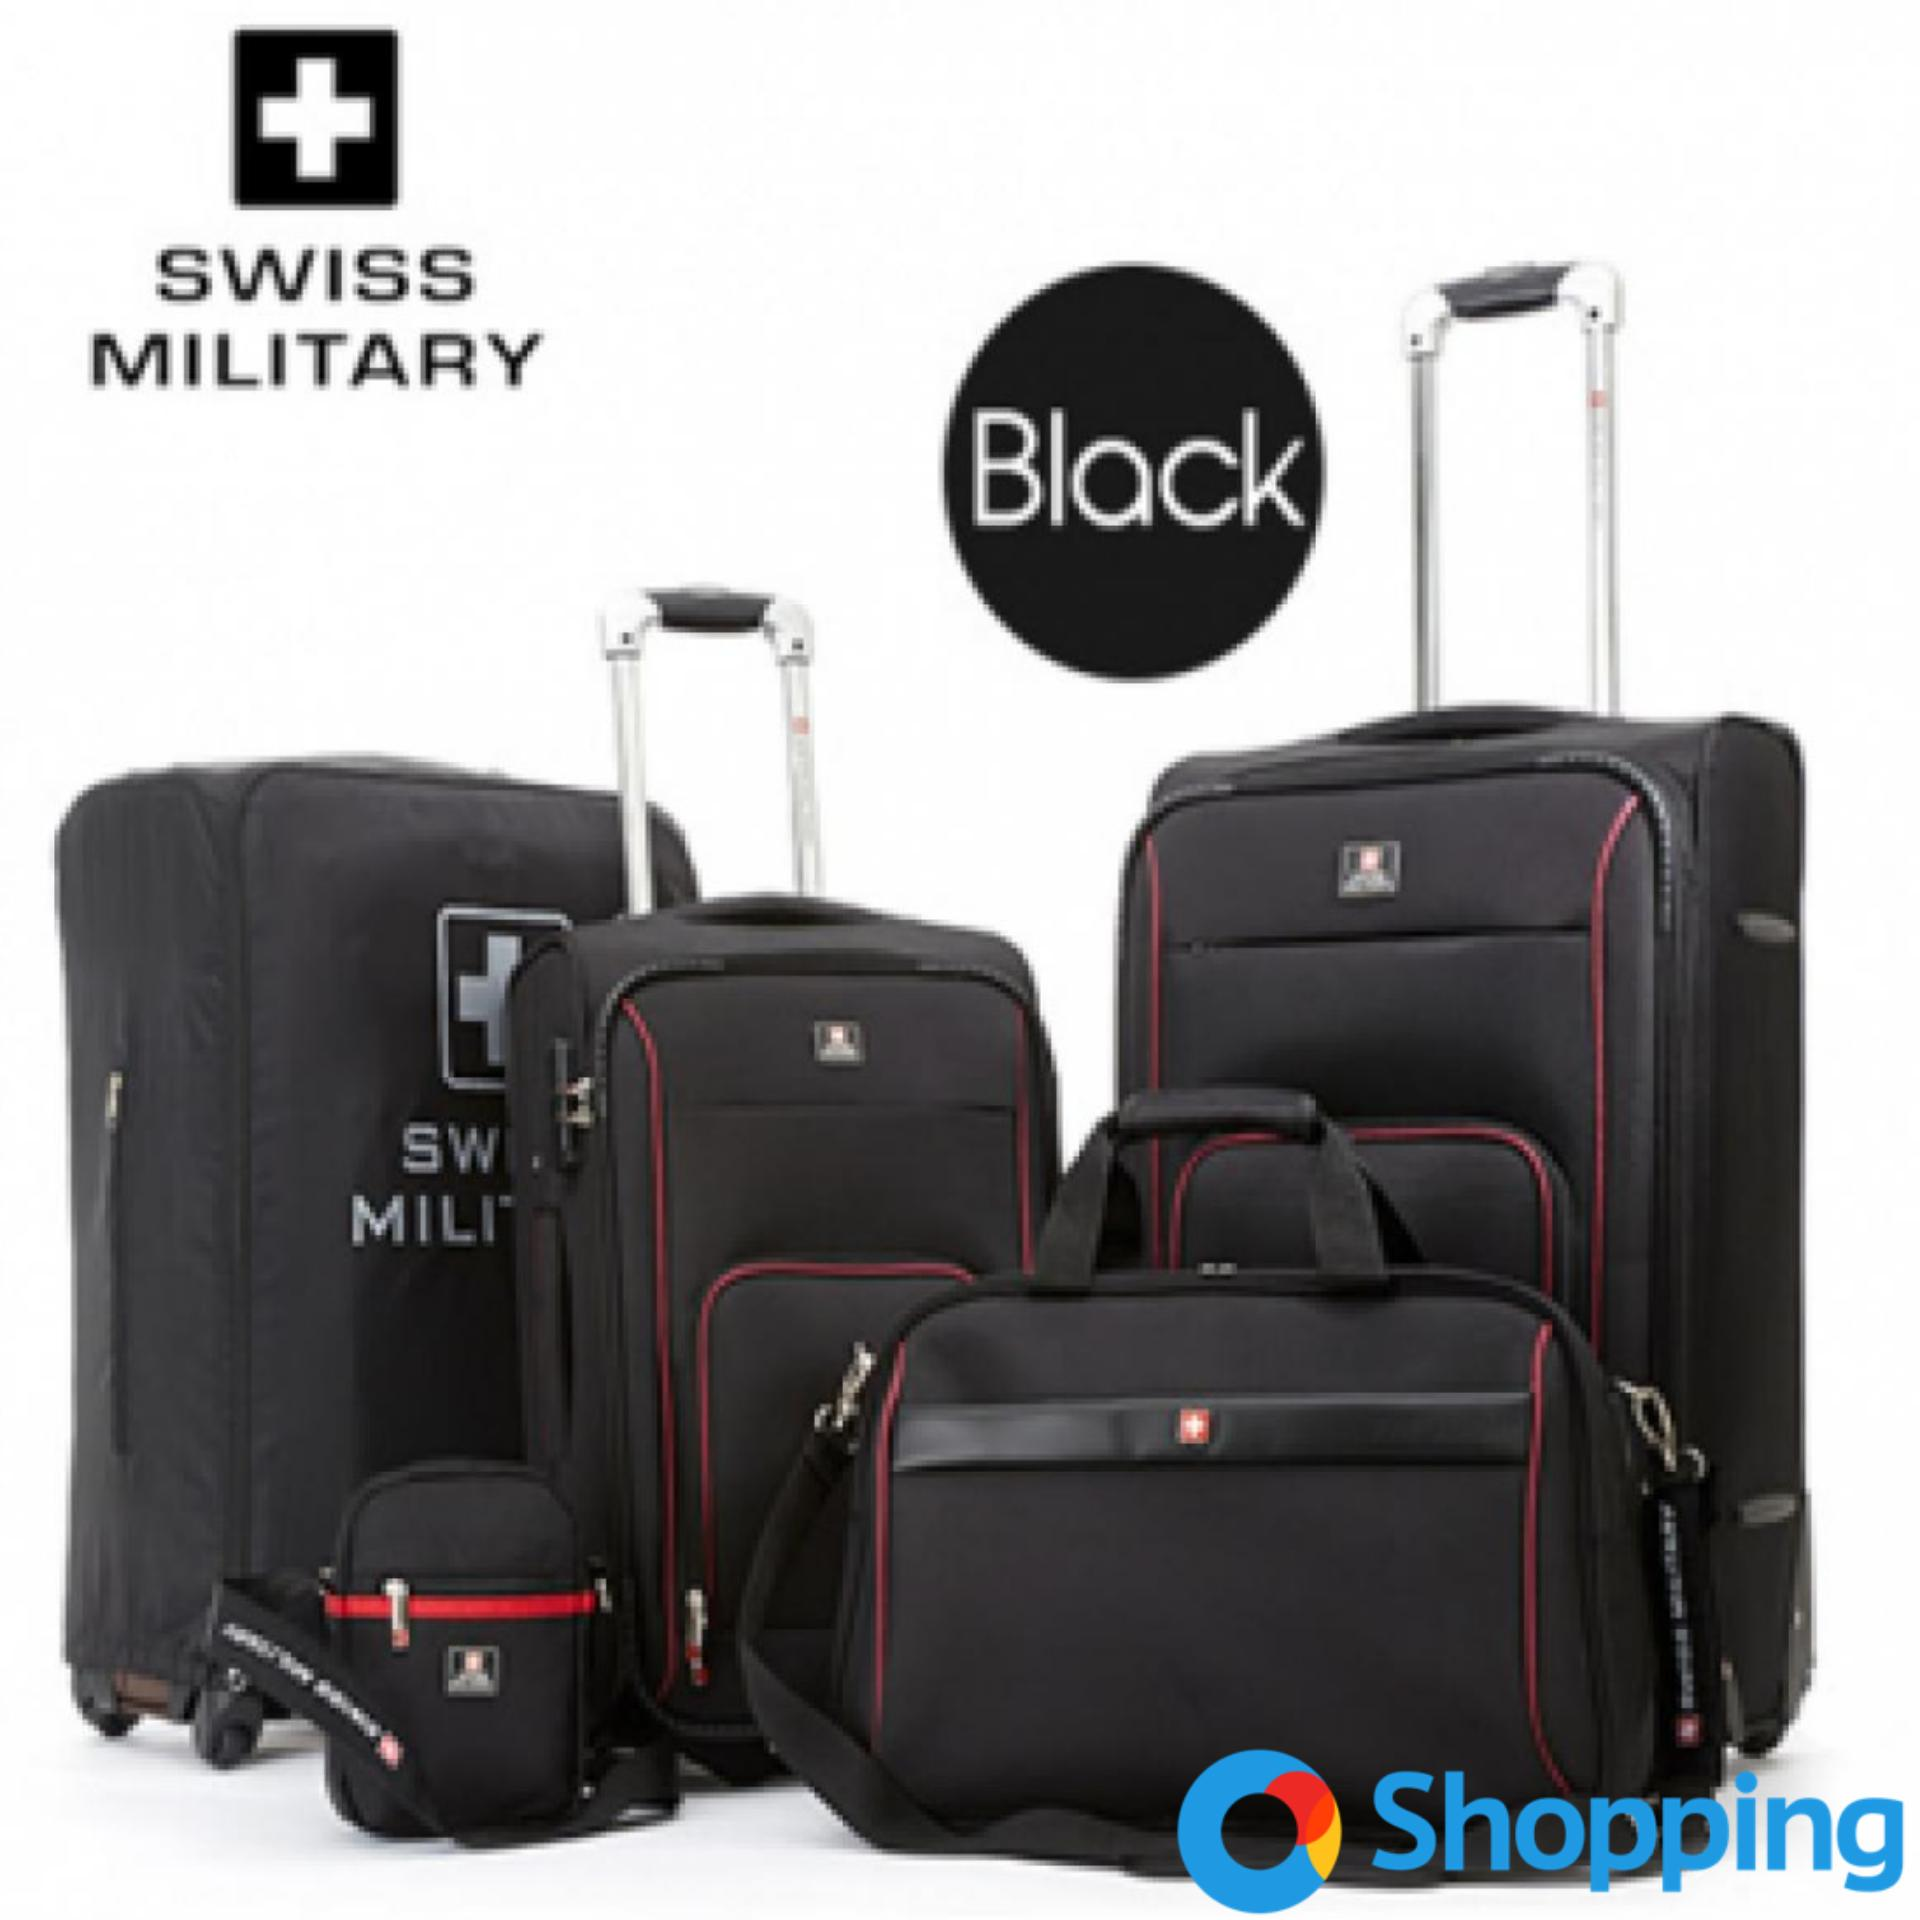 Swiss Military Luggage 5-Piece Set [black] By O Shopping.